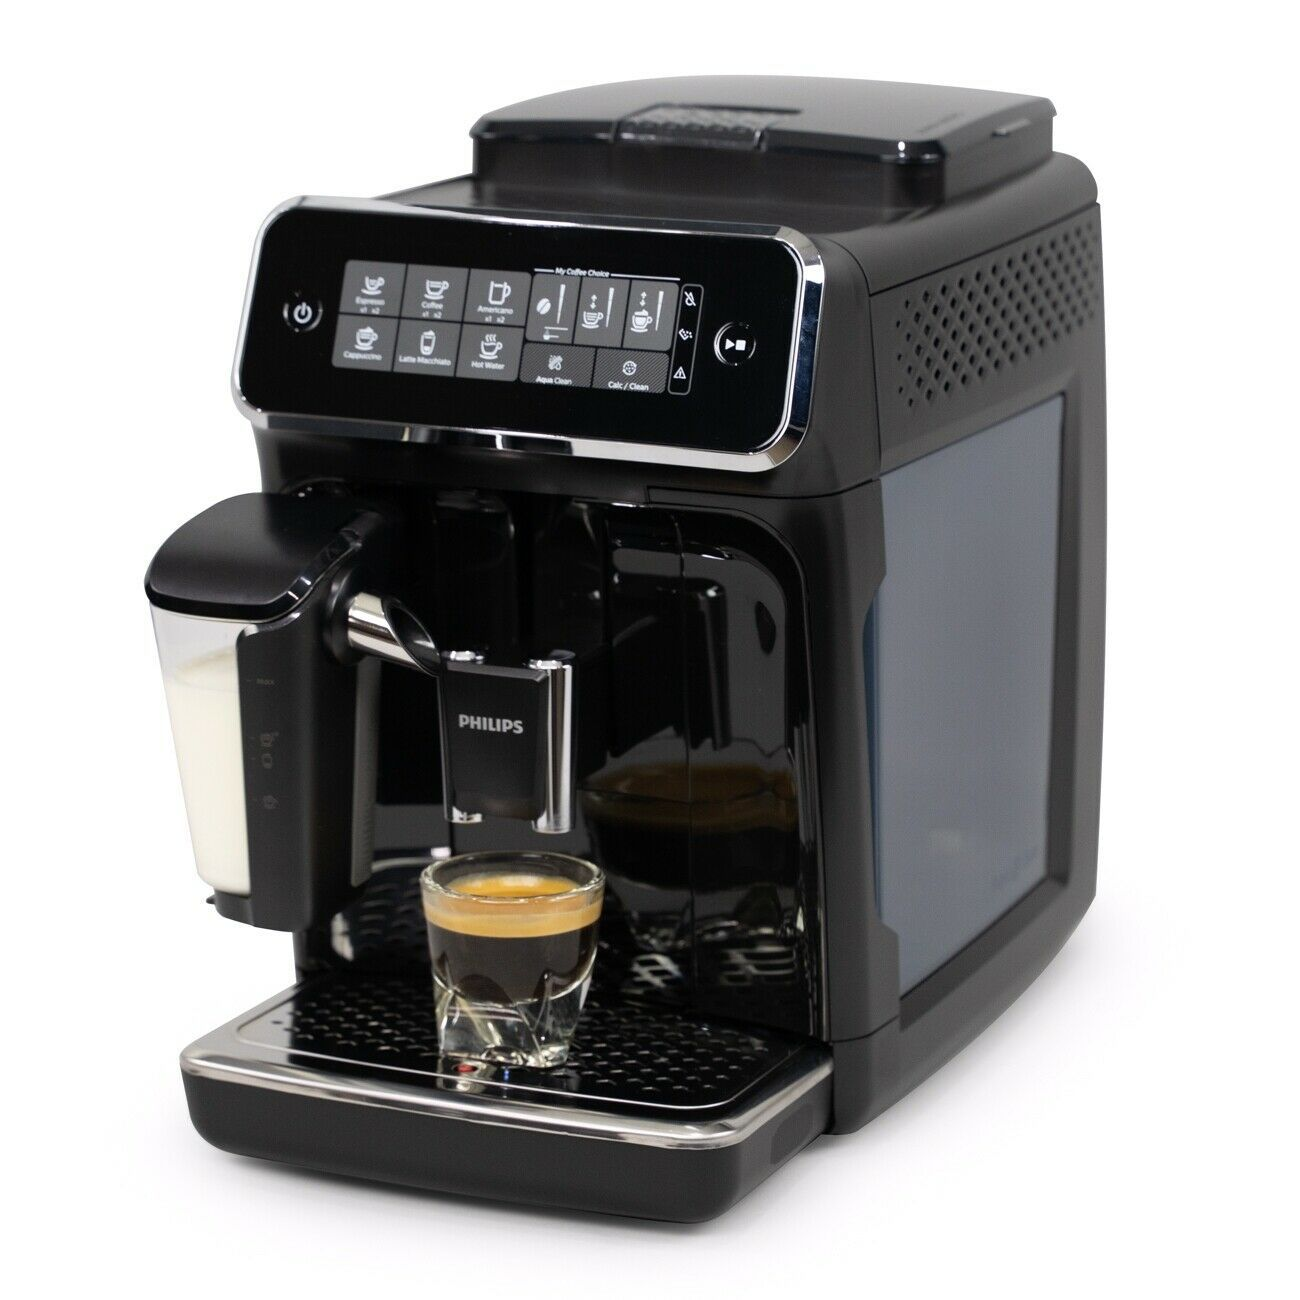 Details about New Philips 3200 SuperAutomatic Espresso